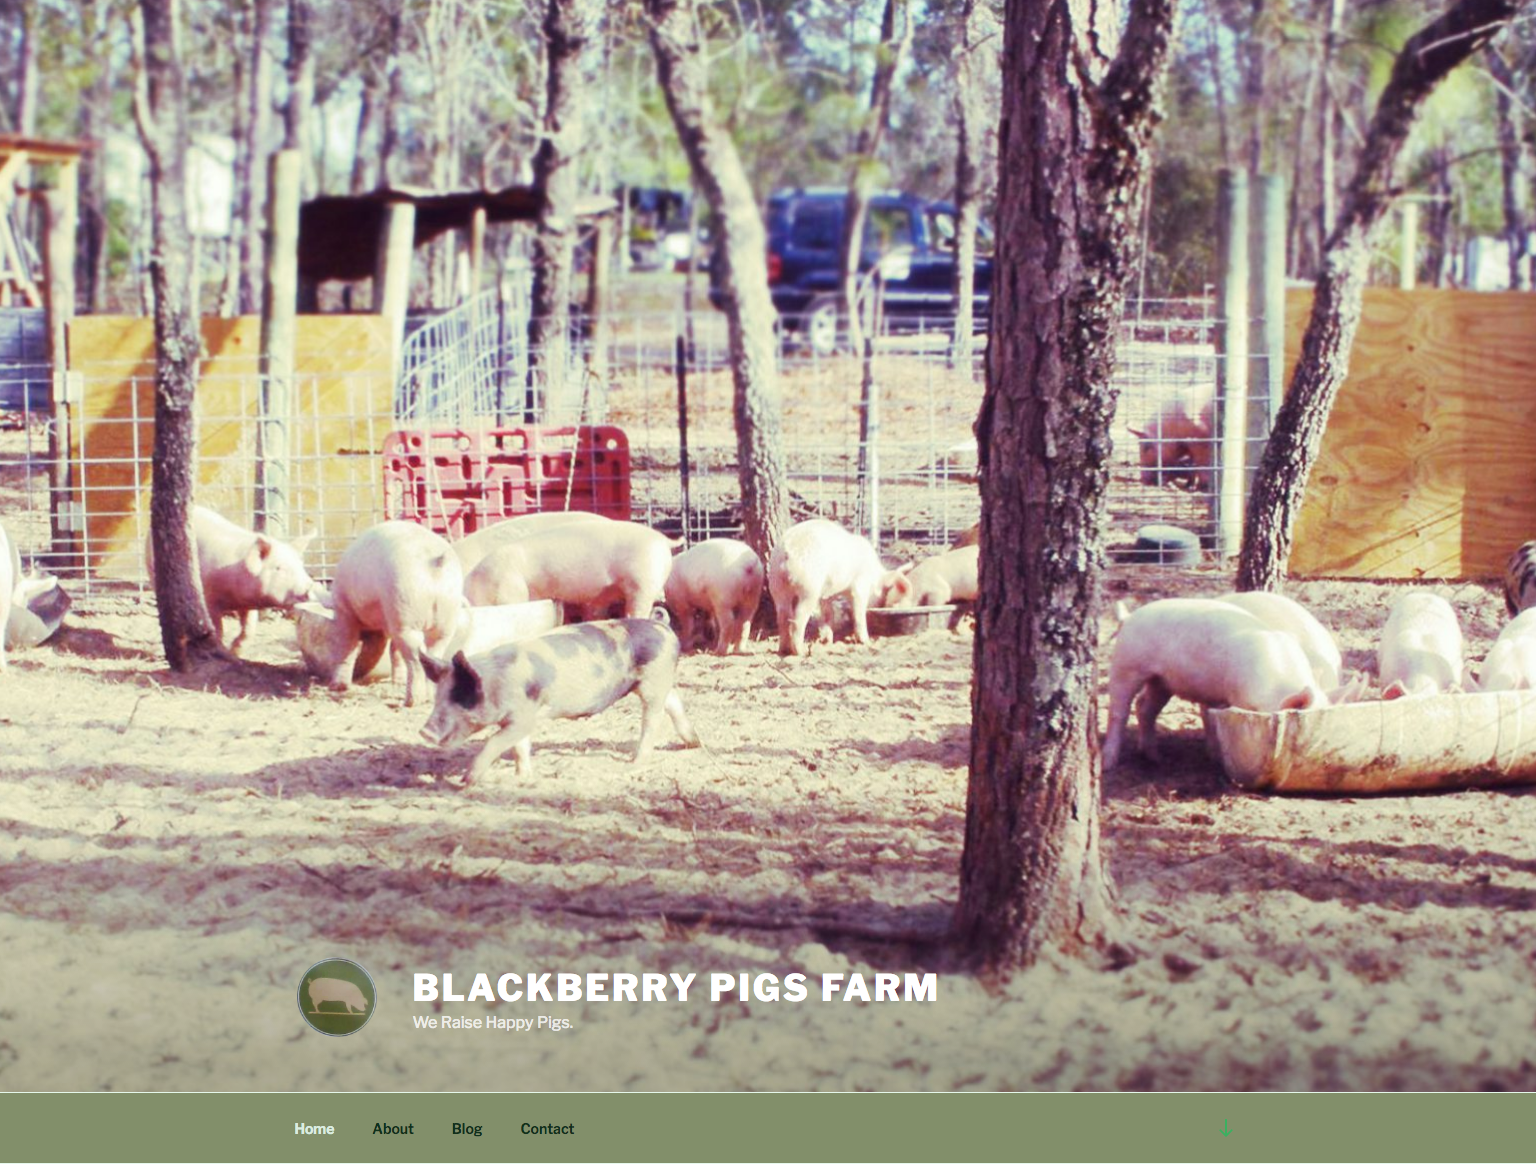 Website, Blackberry Pig